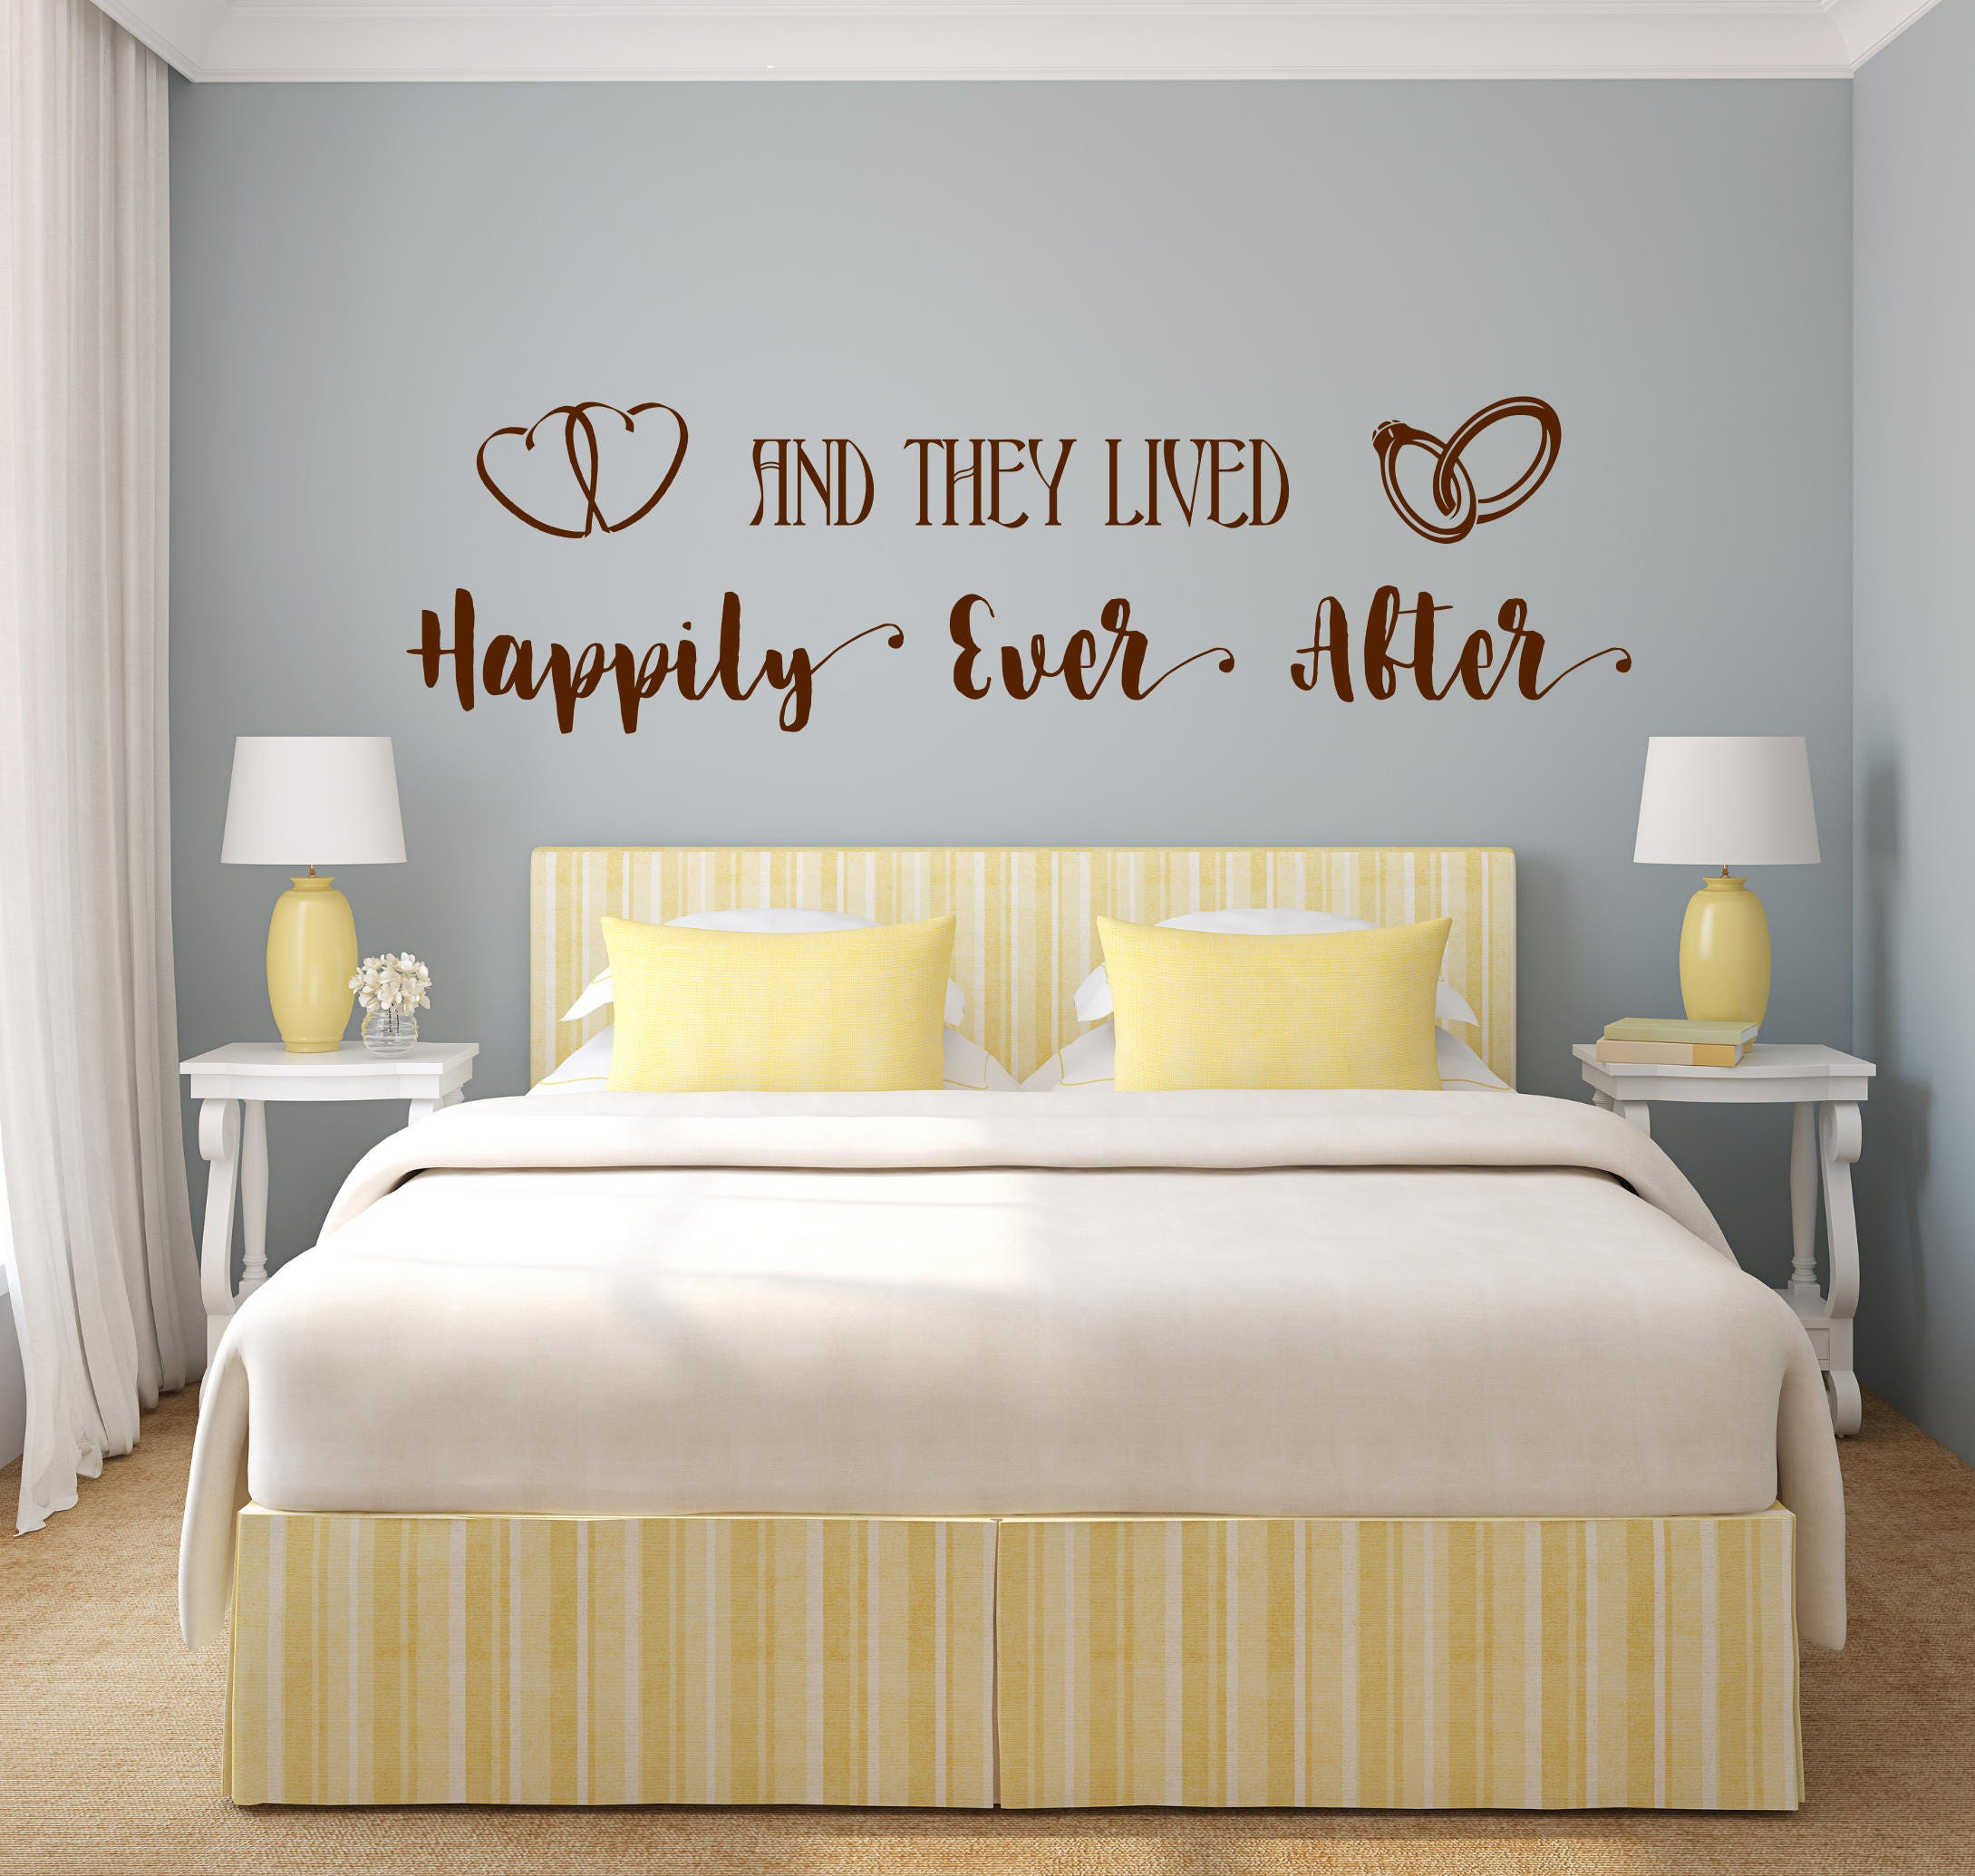 Happily ever after decal, happily ever after sign, bedroom wall ...